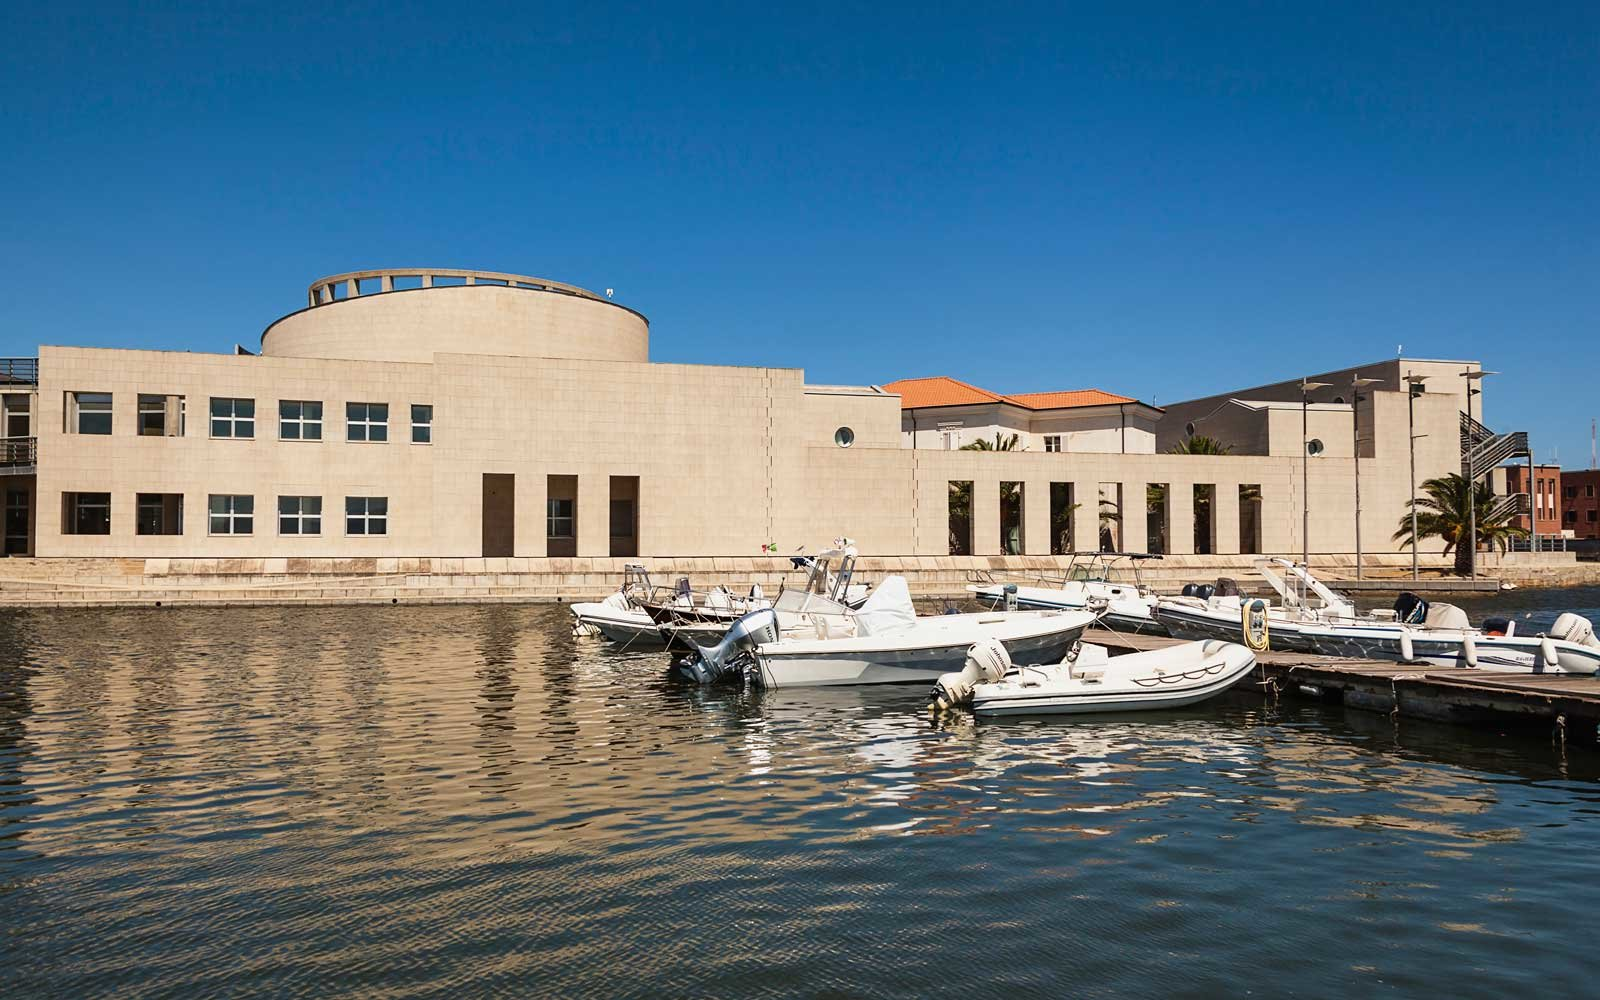 Italy, Sardinia, Olbia, National Archaeology Museum and Museo Del Mare.